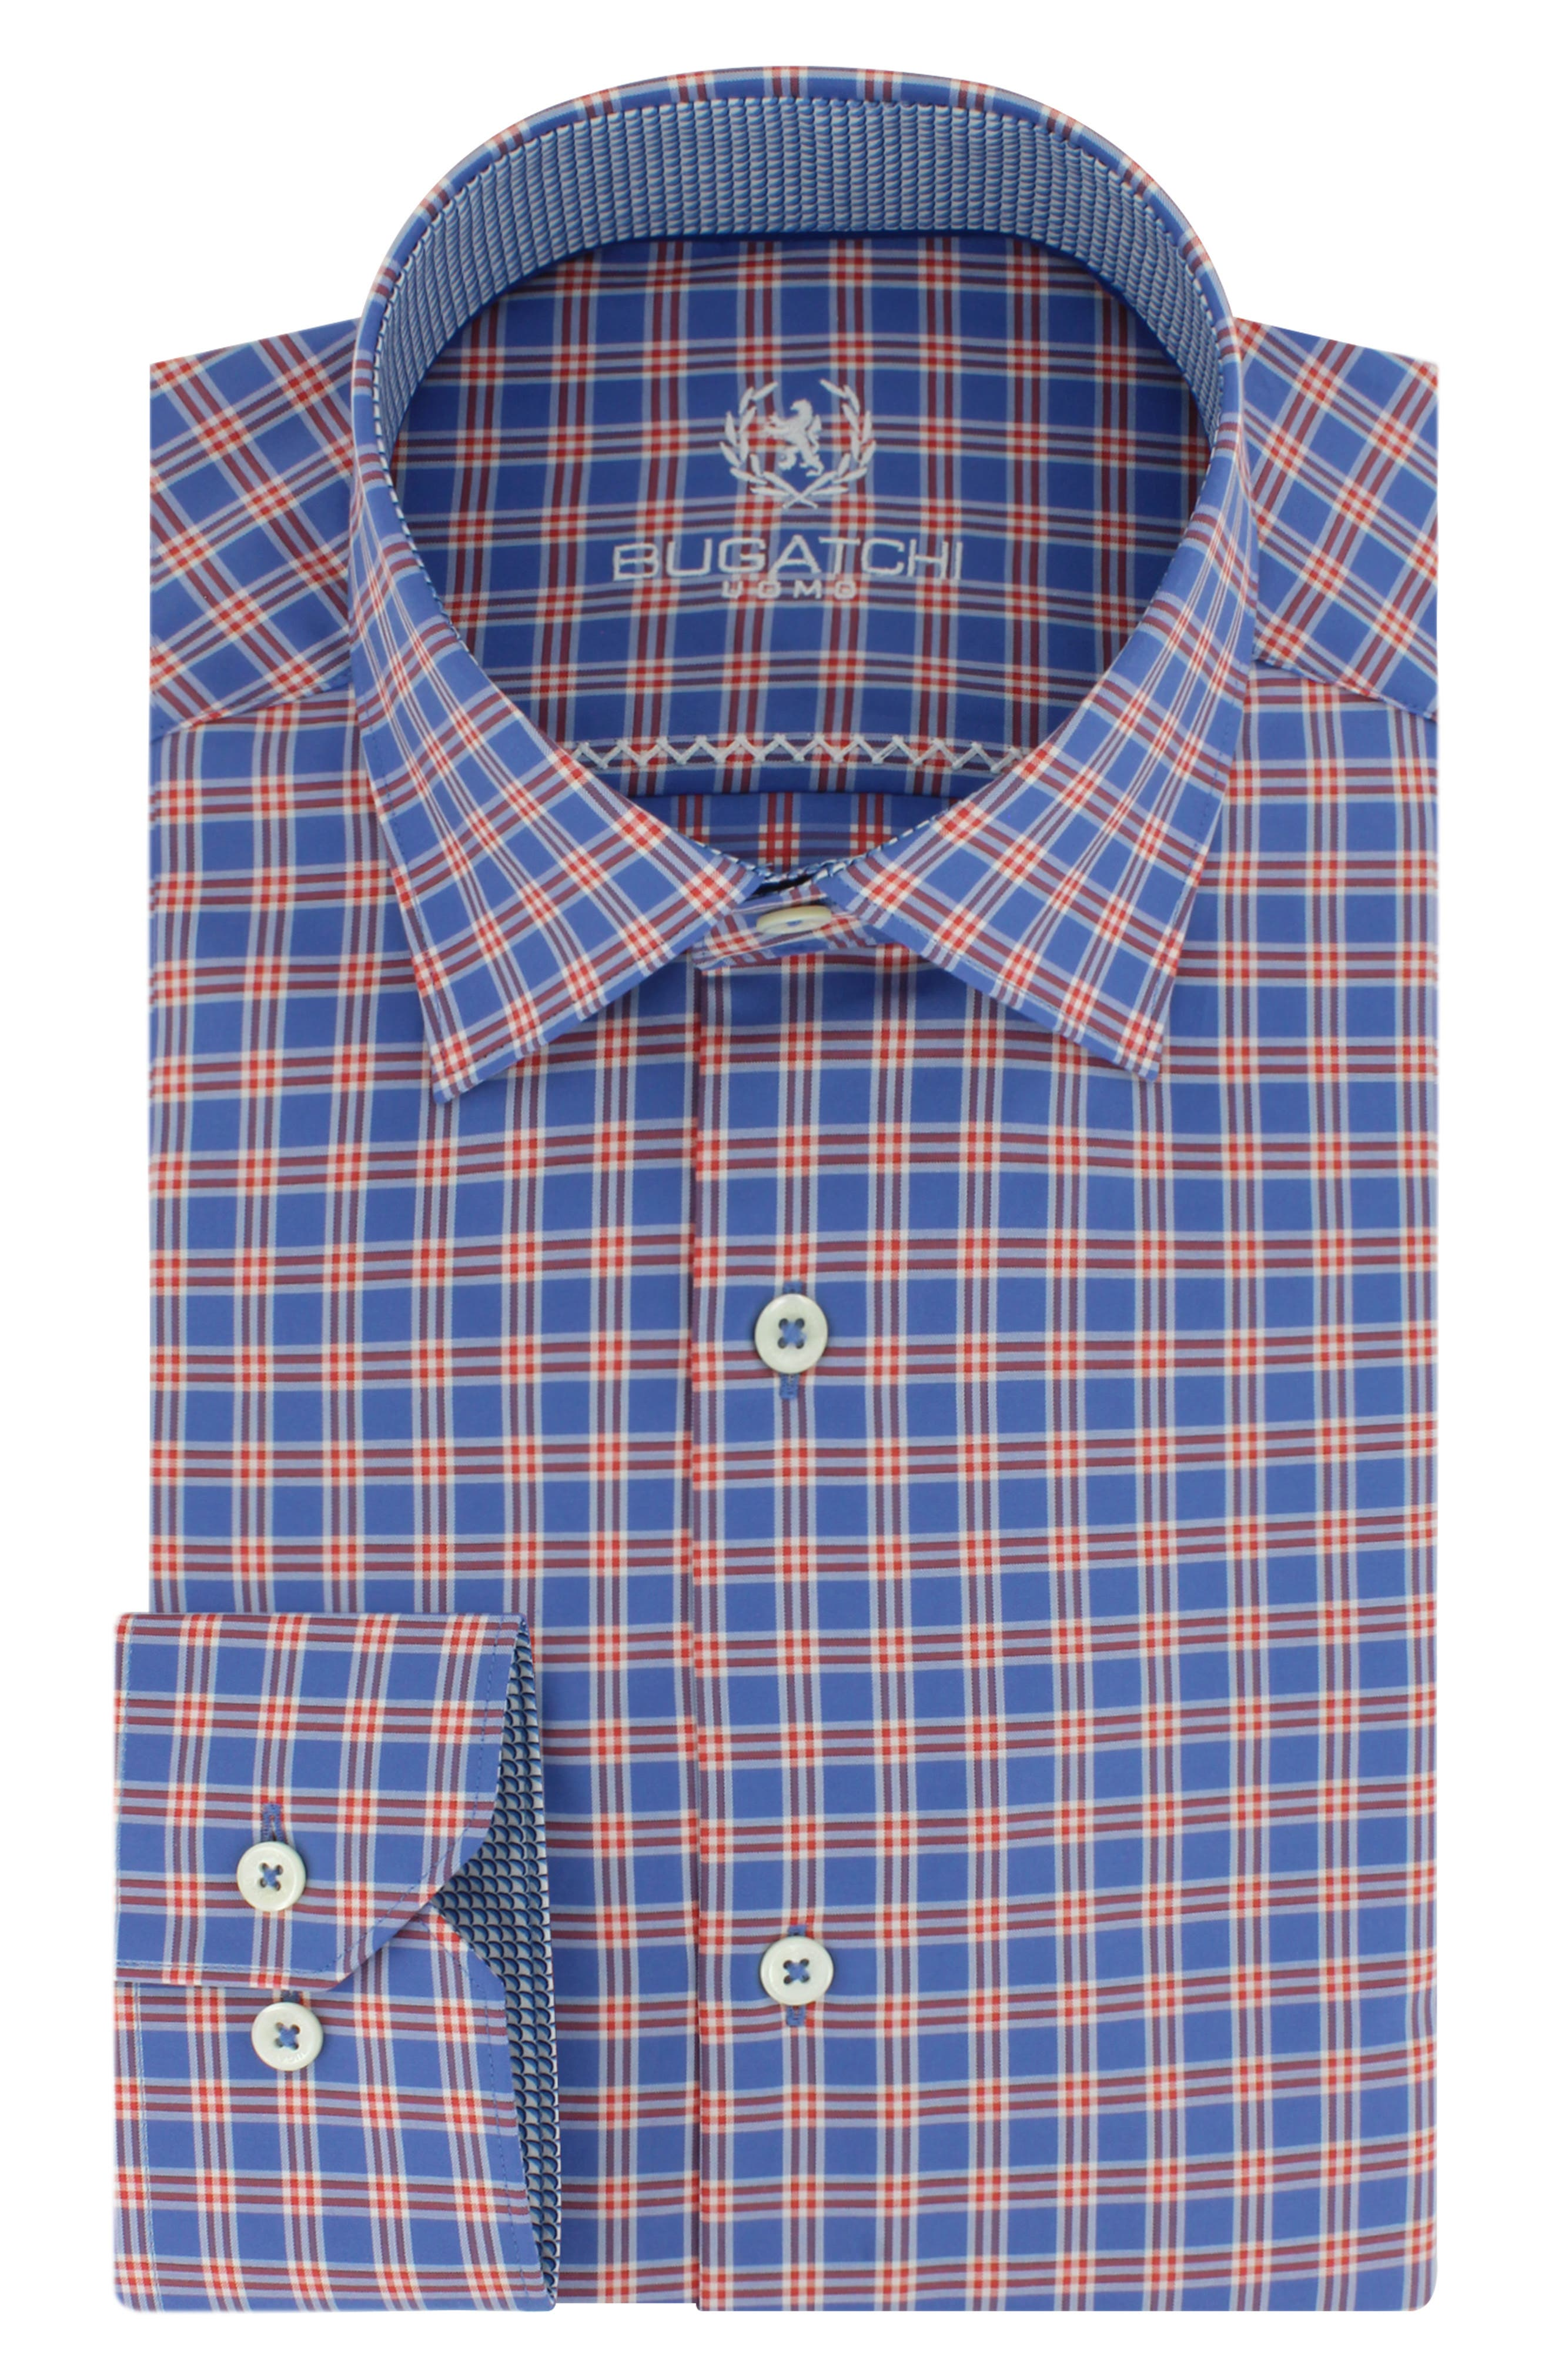 Alternate Image 1 Selected - Bugatchi Trim Fit Plaid Dress Shirt